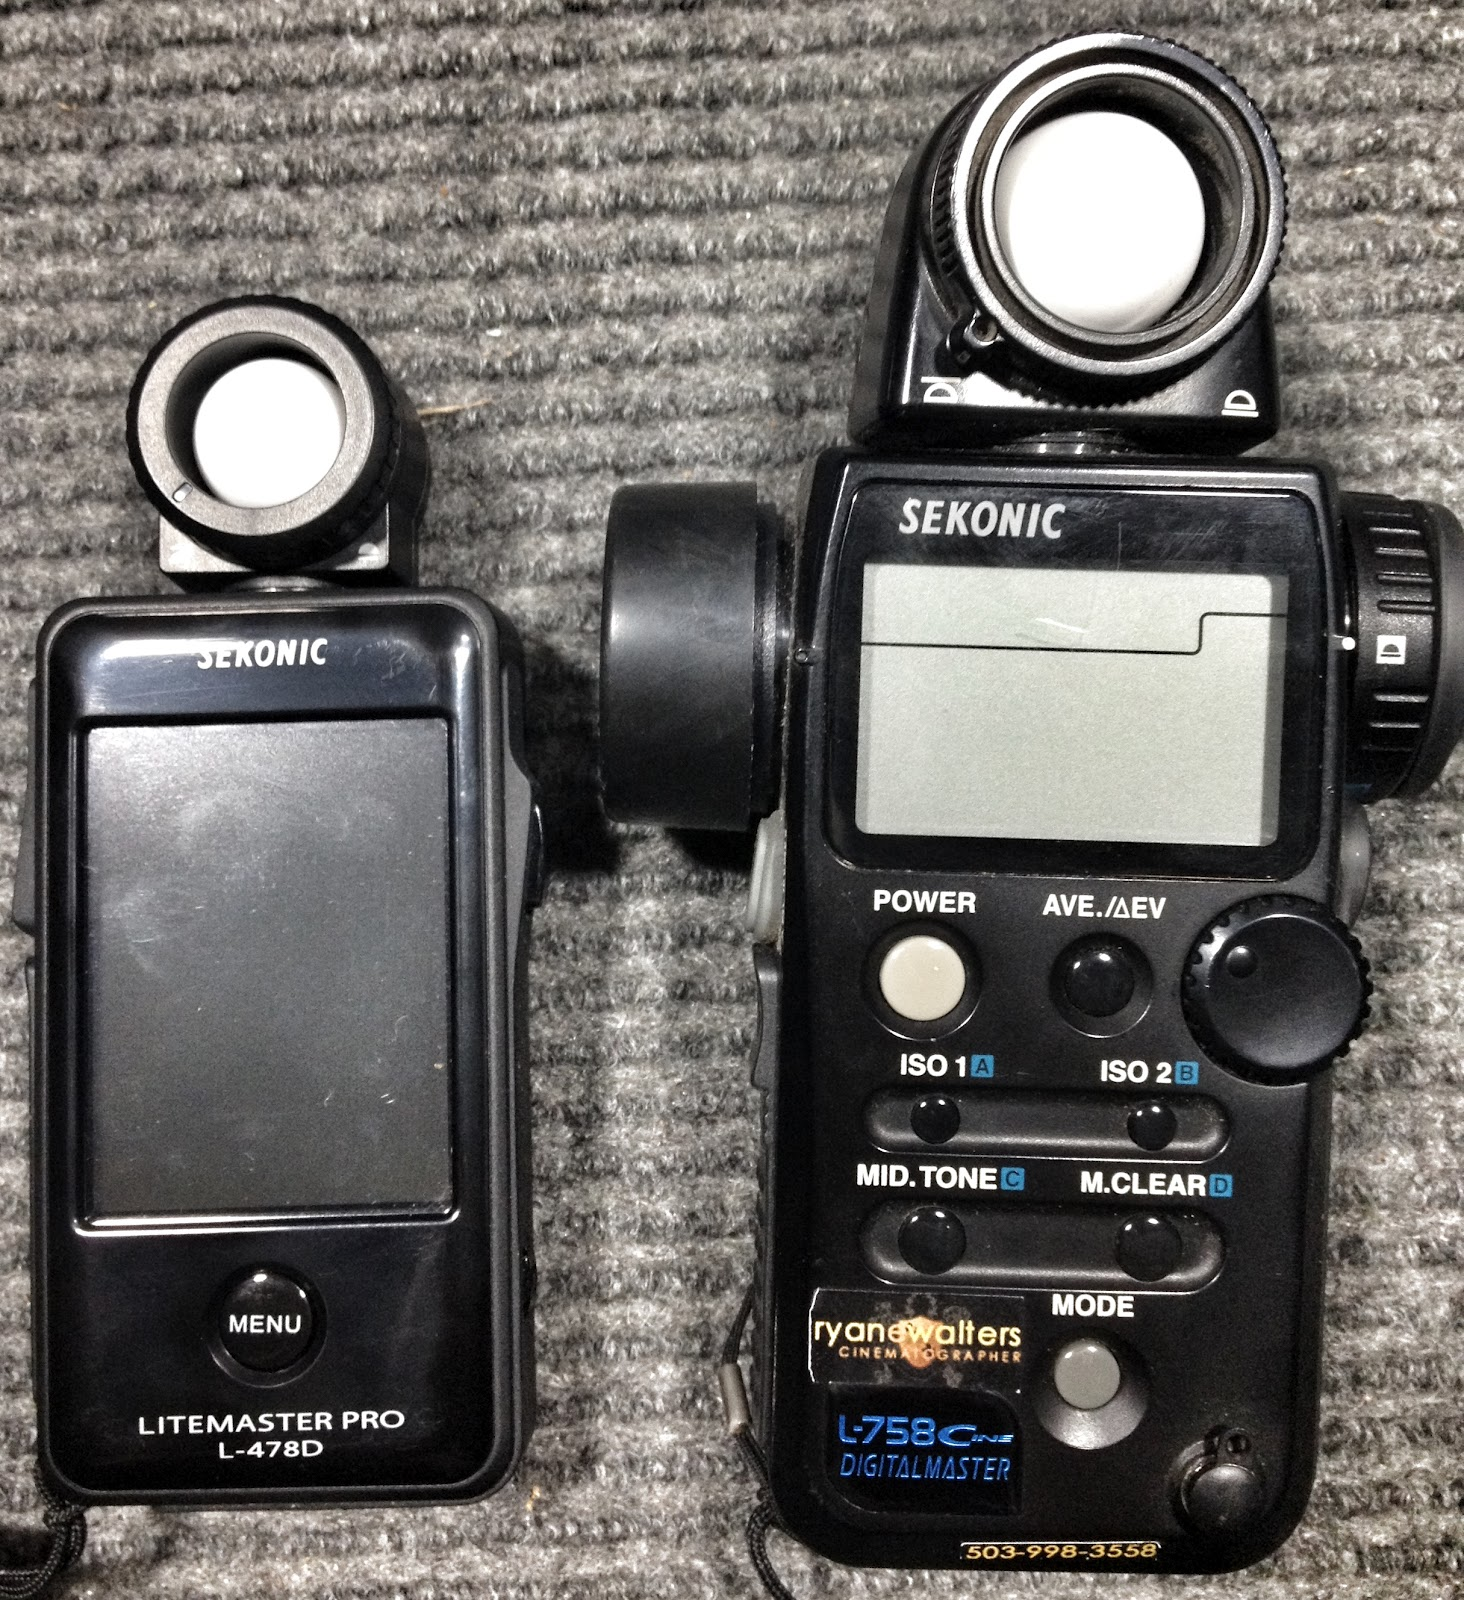 Sekonic Light Meter: L-758DR-U DigitalMaster Exposure Meter - Overview